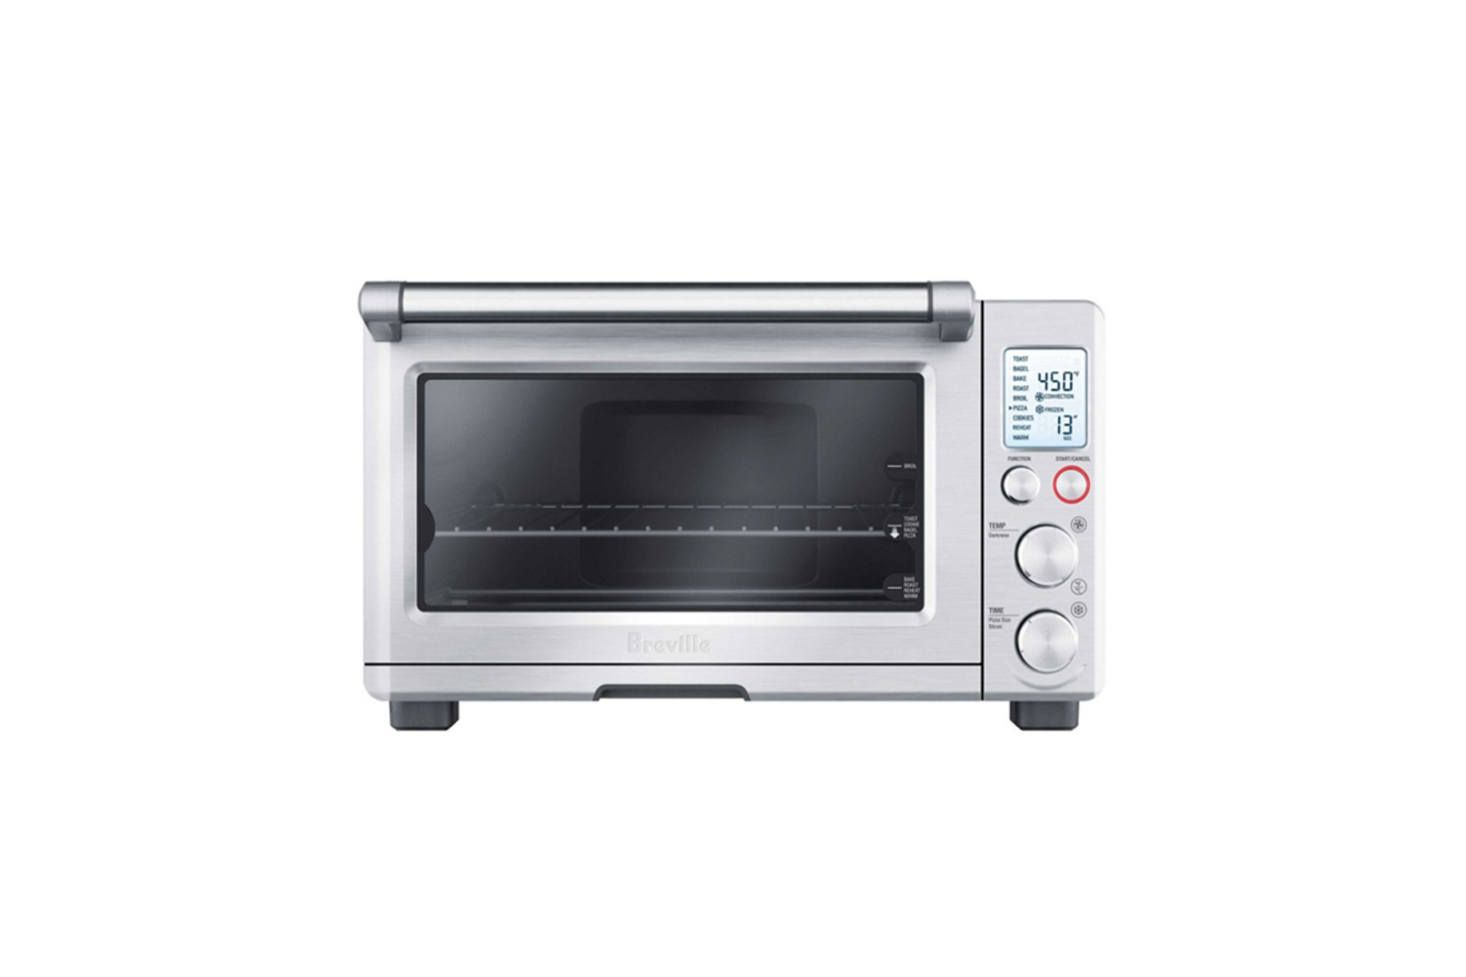 6 Countertop Smart Ovens That Will Change The Way You Cook Countertop Convection Oven Countertop Oven Kitchen Oven